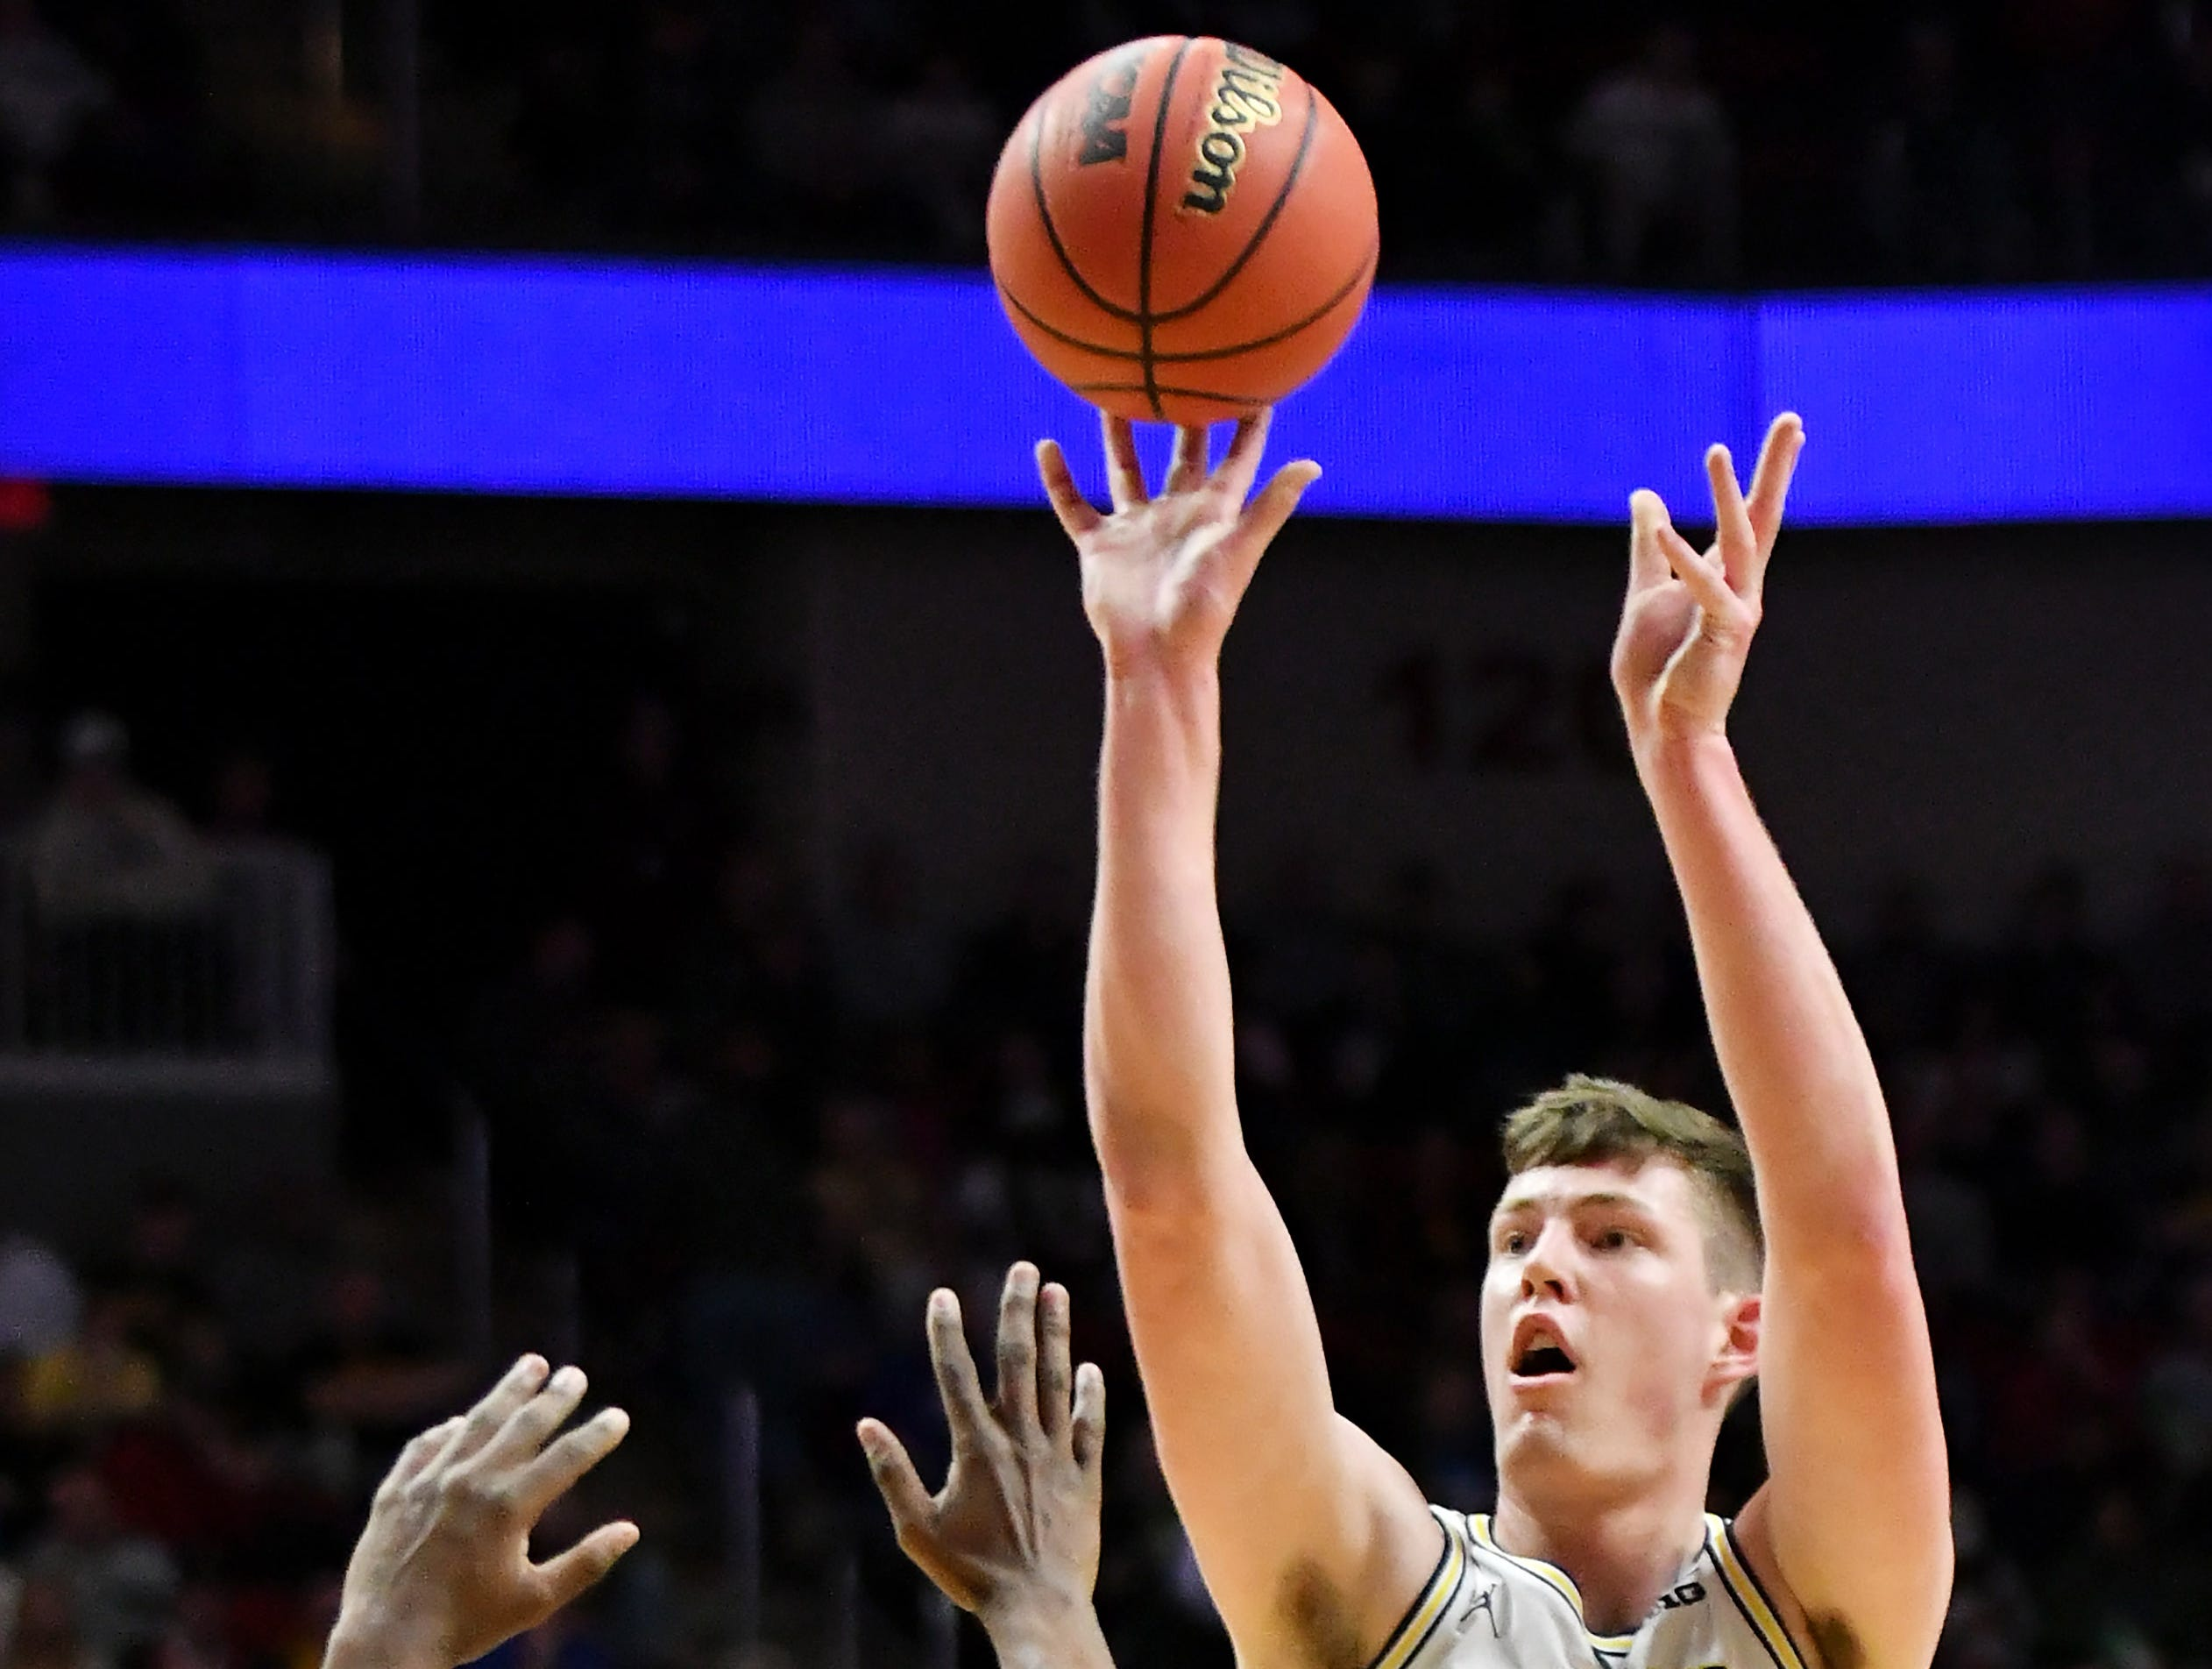 Michigan center Jon Teske (15) shoots over Montana guard Sayeed Pridgett (4) in the first half.  Michigan vs Montana for Round 1 of the NCAA Tournament at Wells Fargo Arena in Des Moines, Iowa on March. 21, 2019.